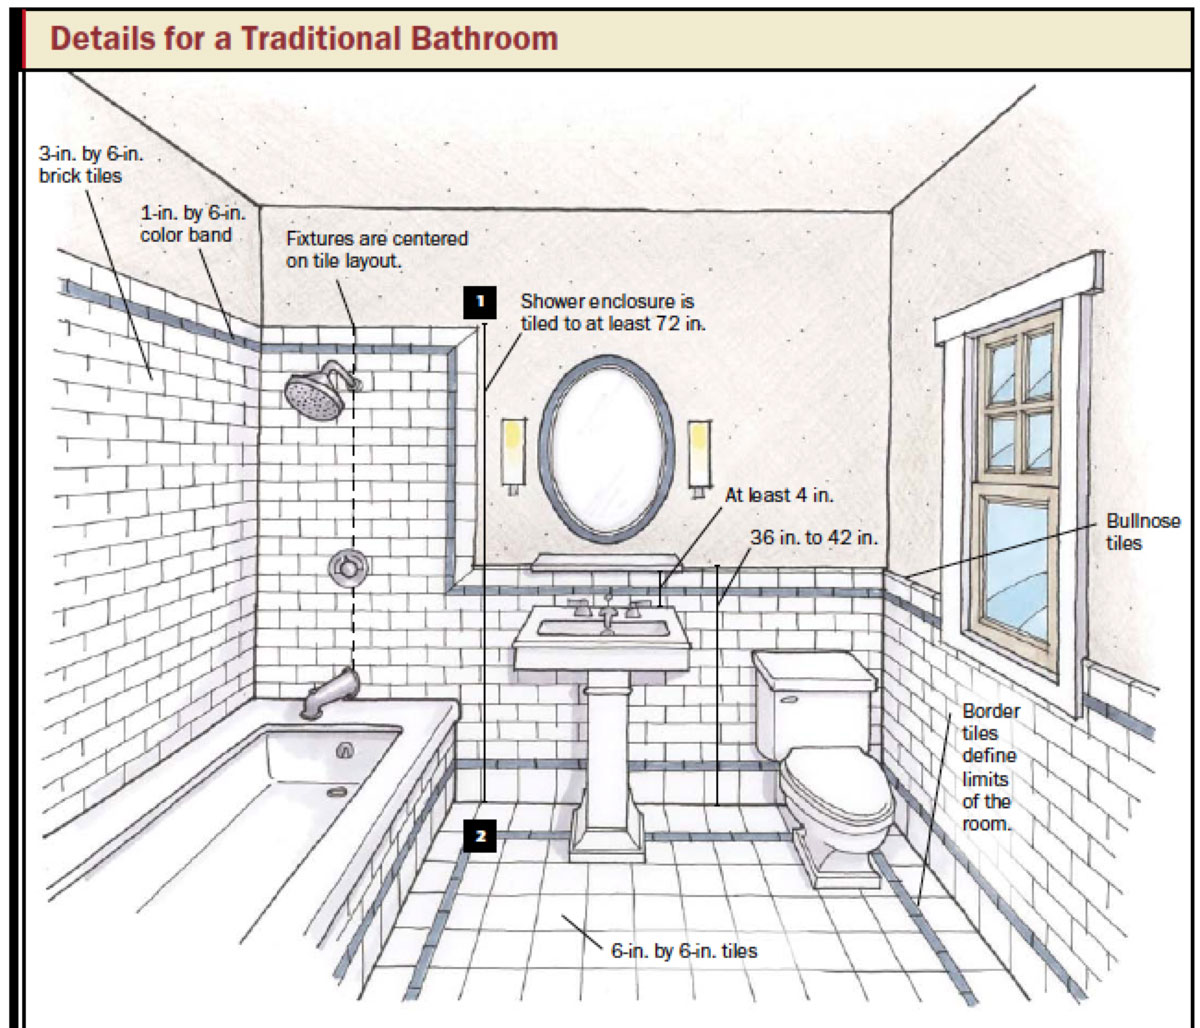 Kitchen Planning Tool: Bathroom Design & Planning Tips: